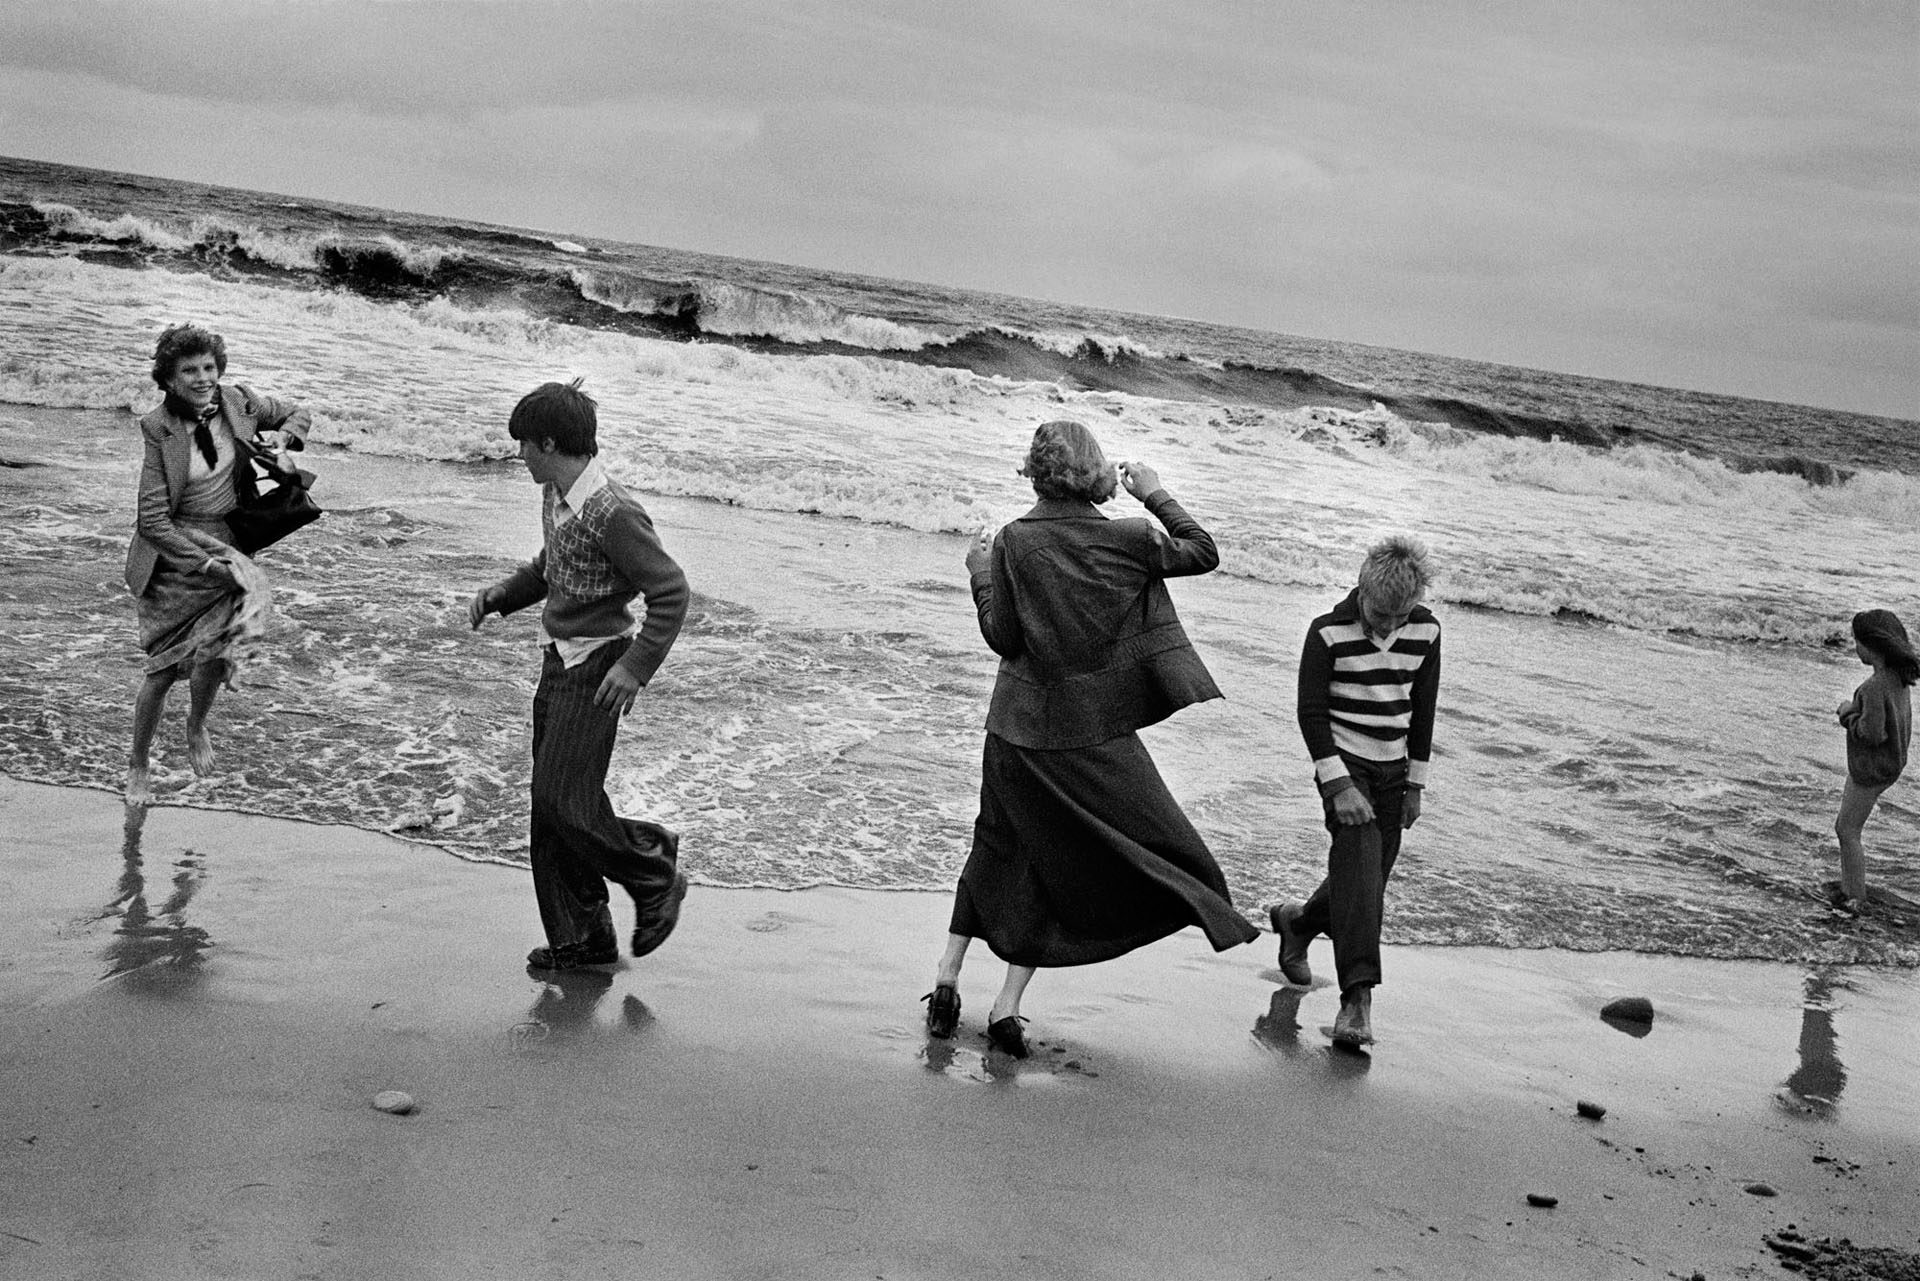 From By The Sea by Marketa Luskacová, pub. by RRB Photobooks